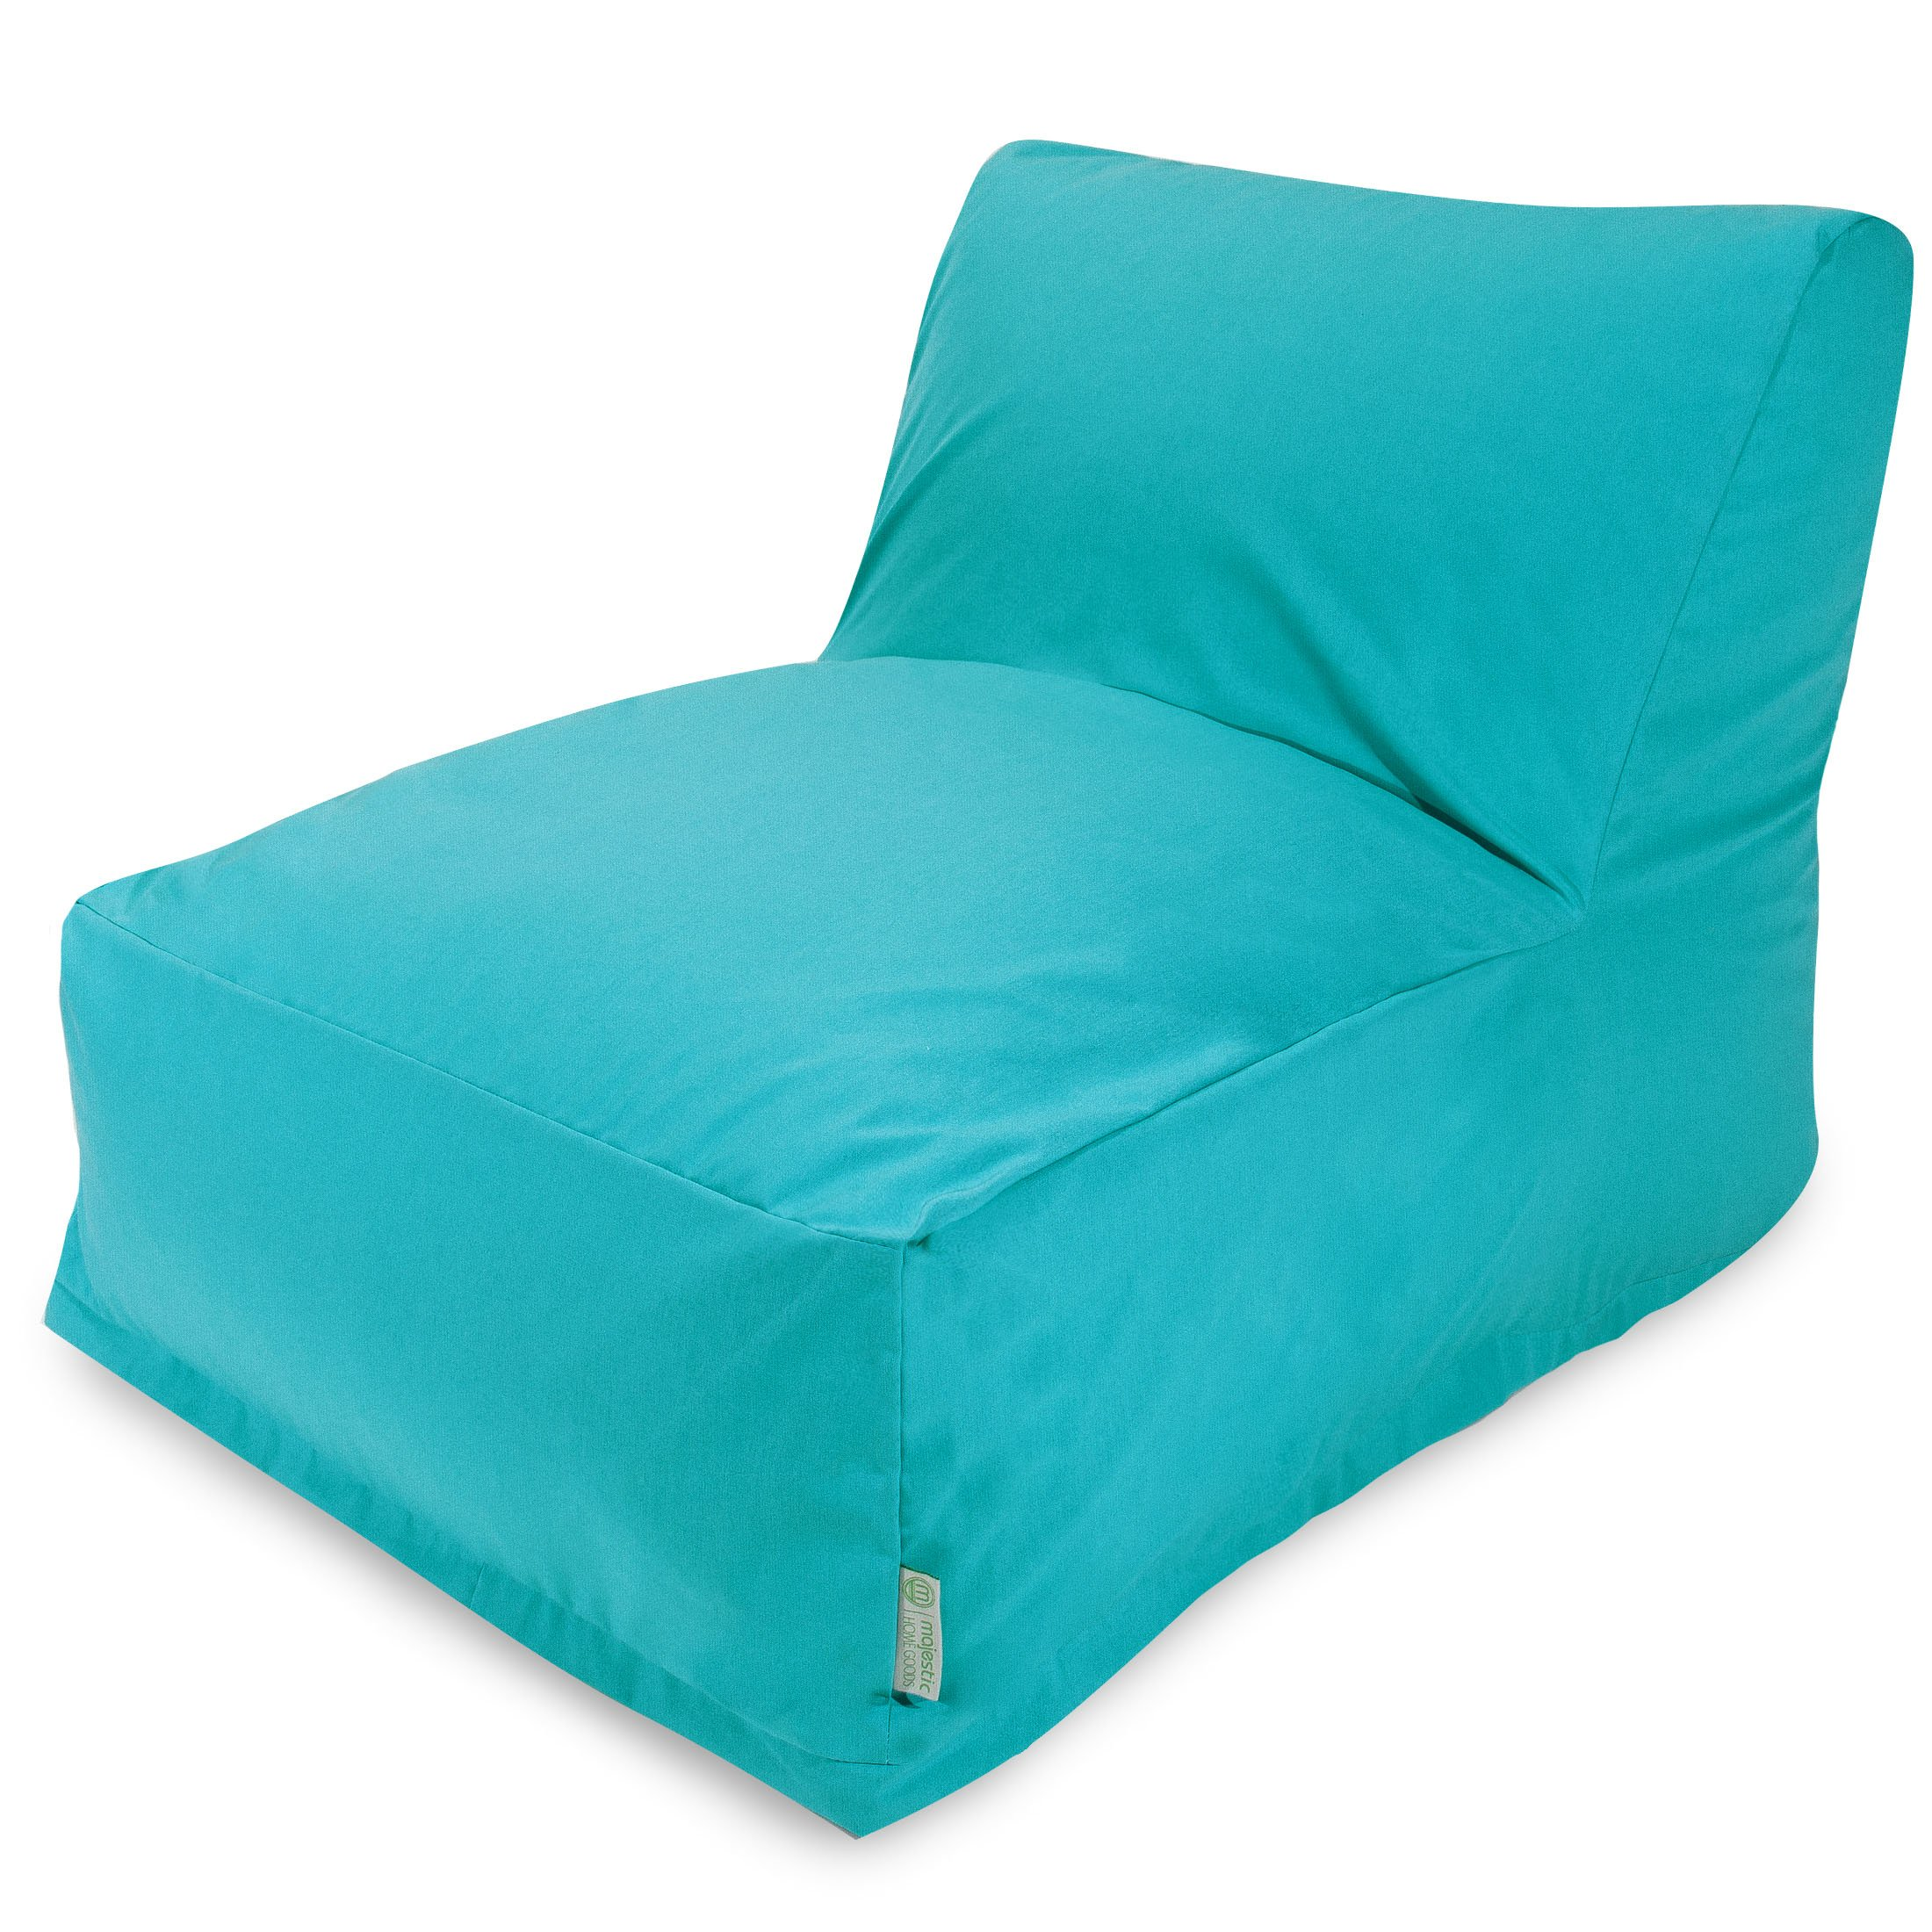 Majestic Home Goods Bean Bag Chair Lounger, Teal